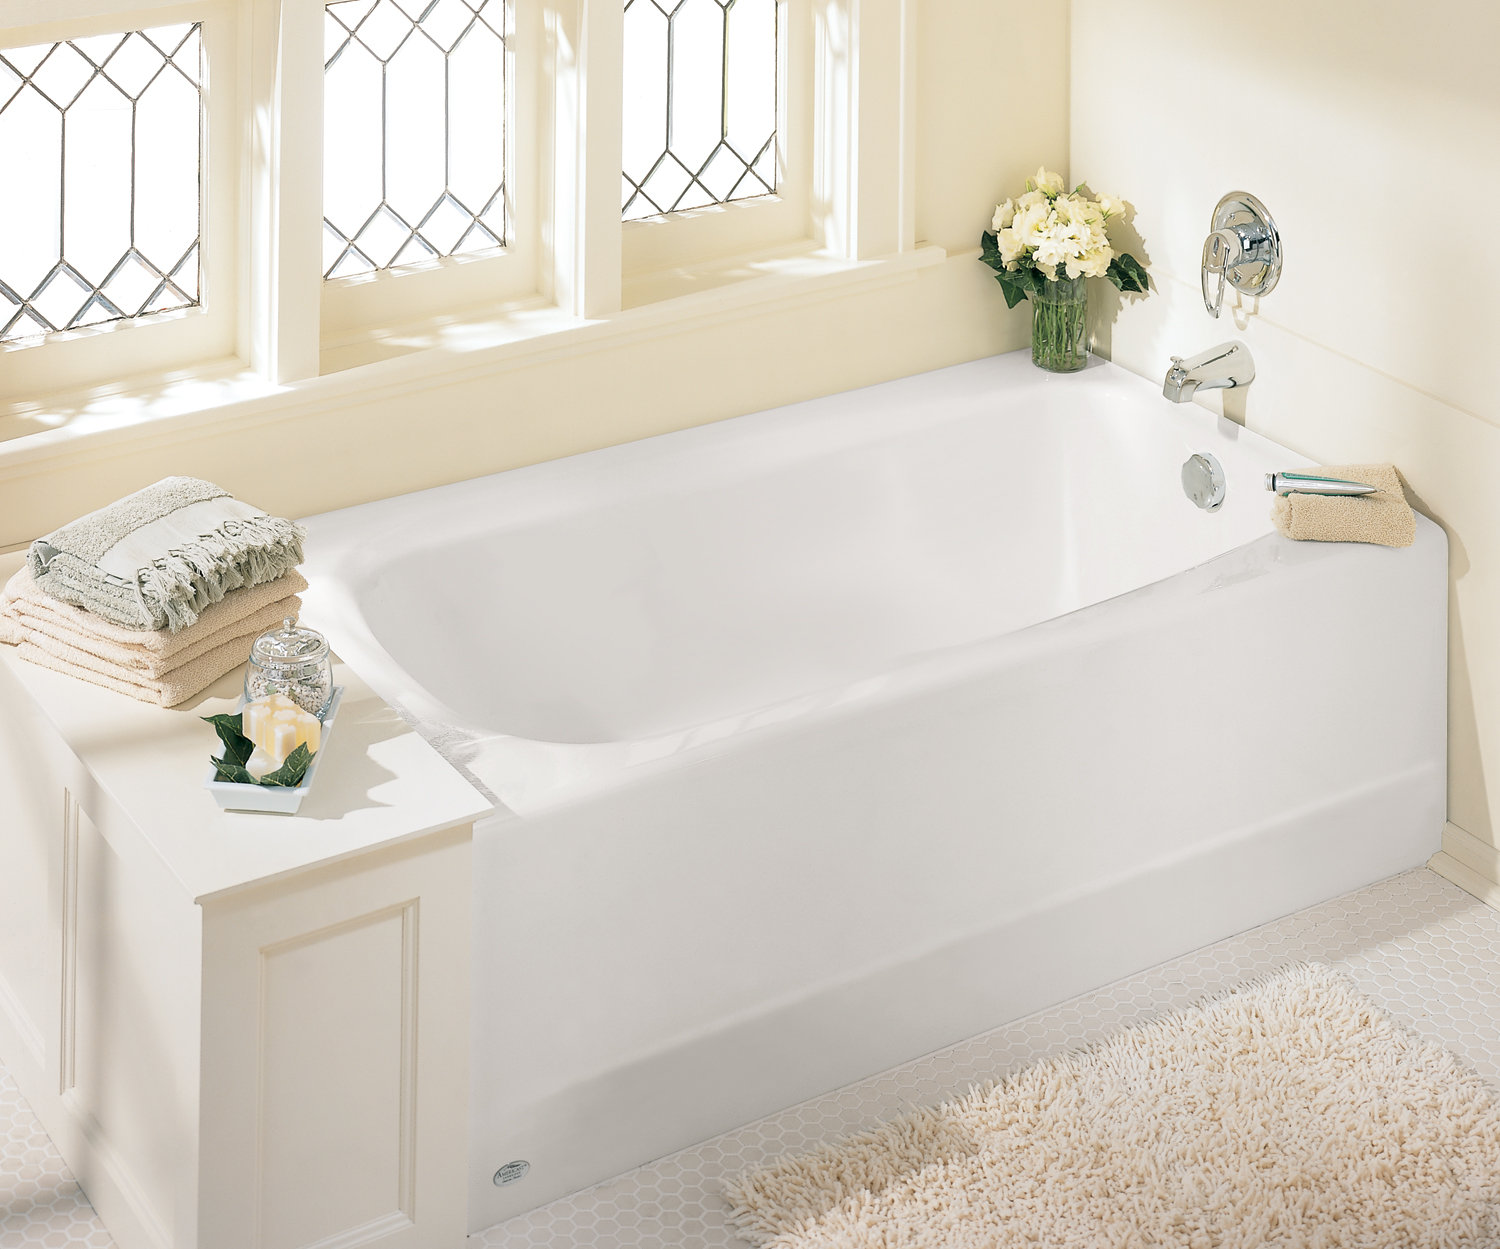 American Standard 2460.002.020 Cambridge 5-Feet Bath Tub with Left ...